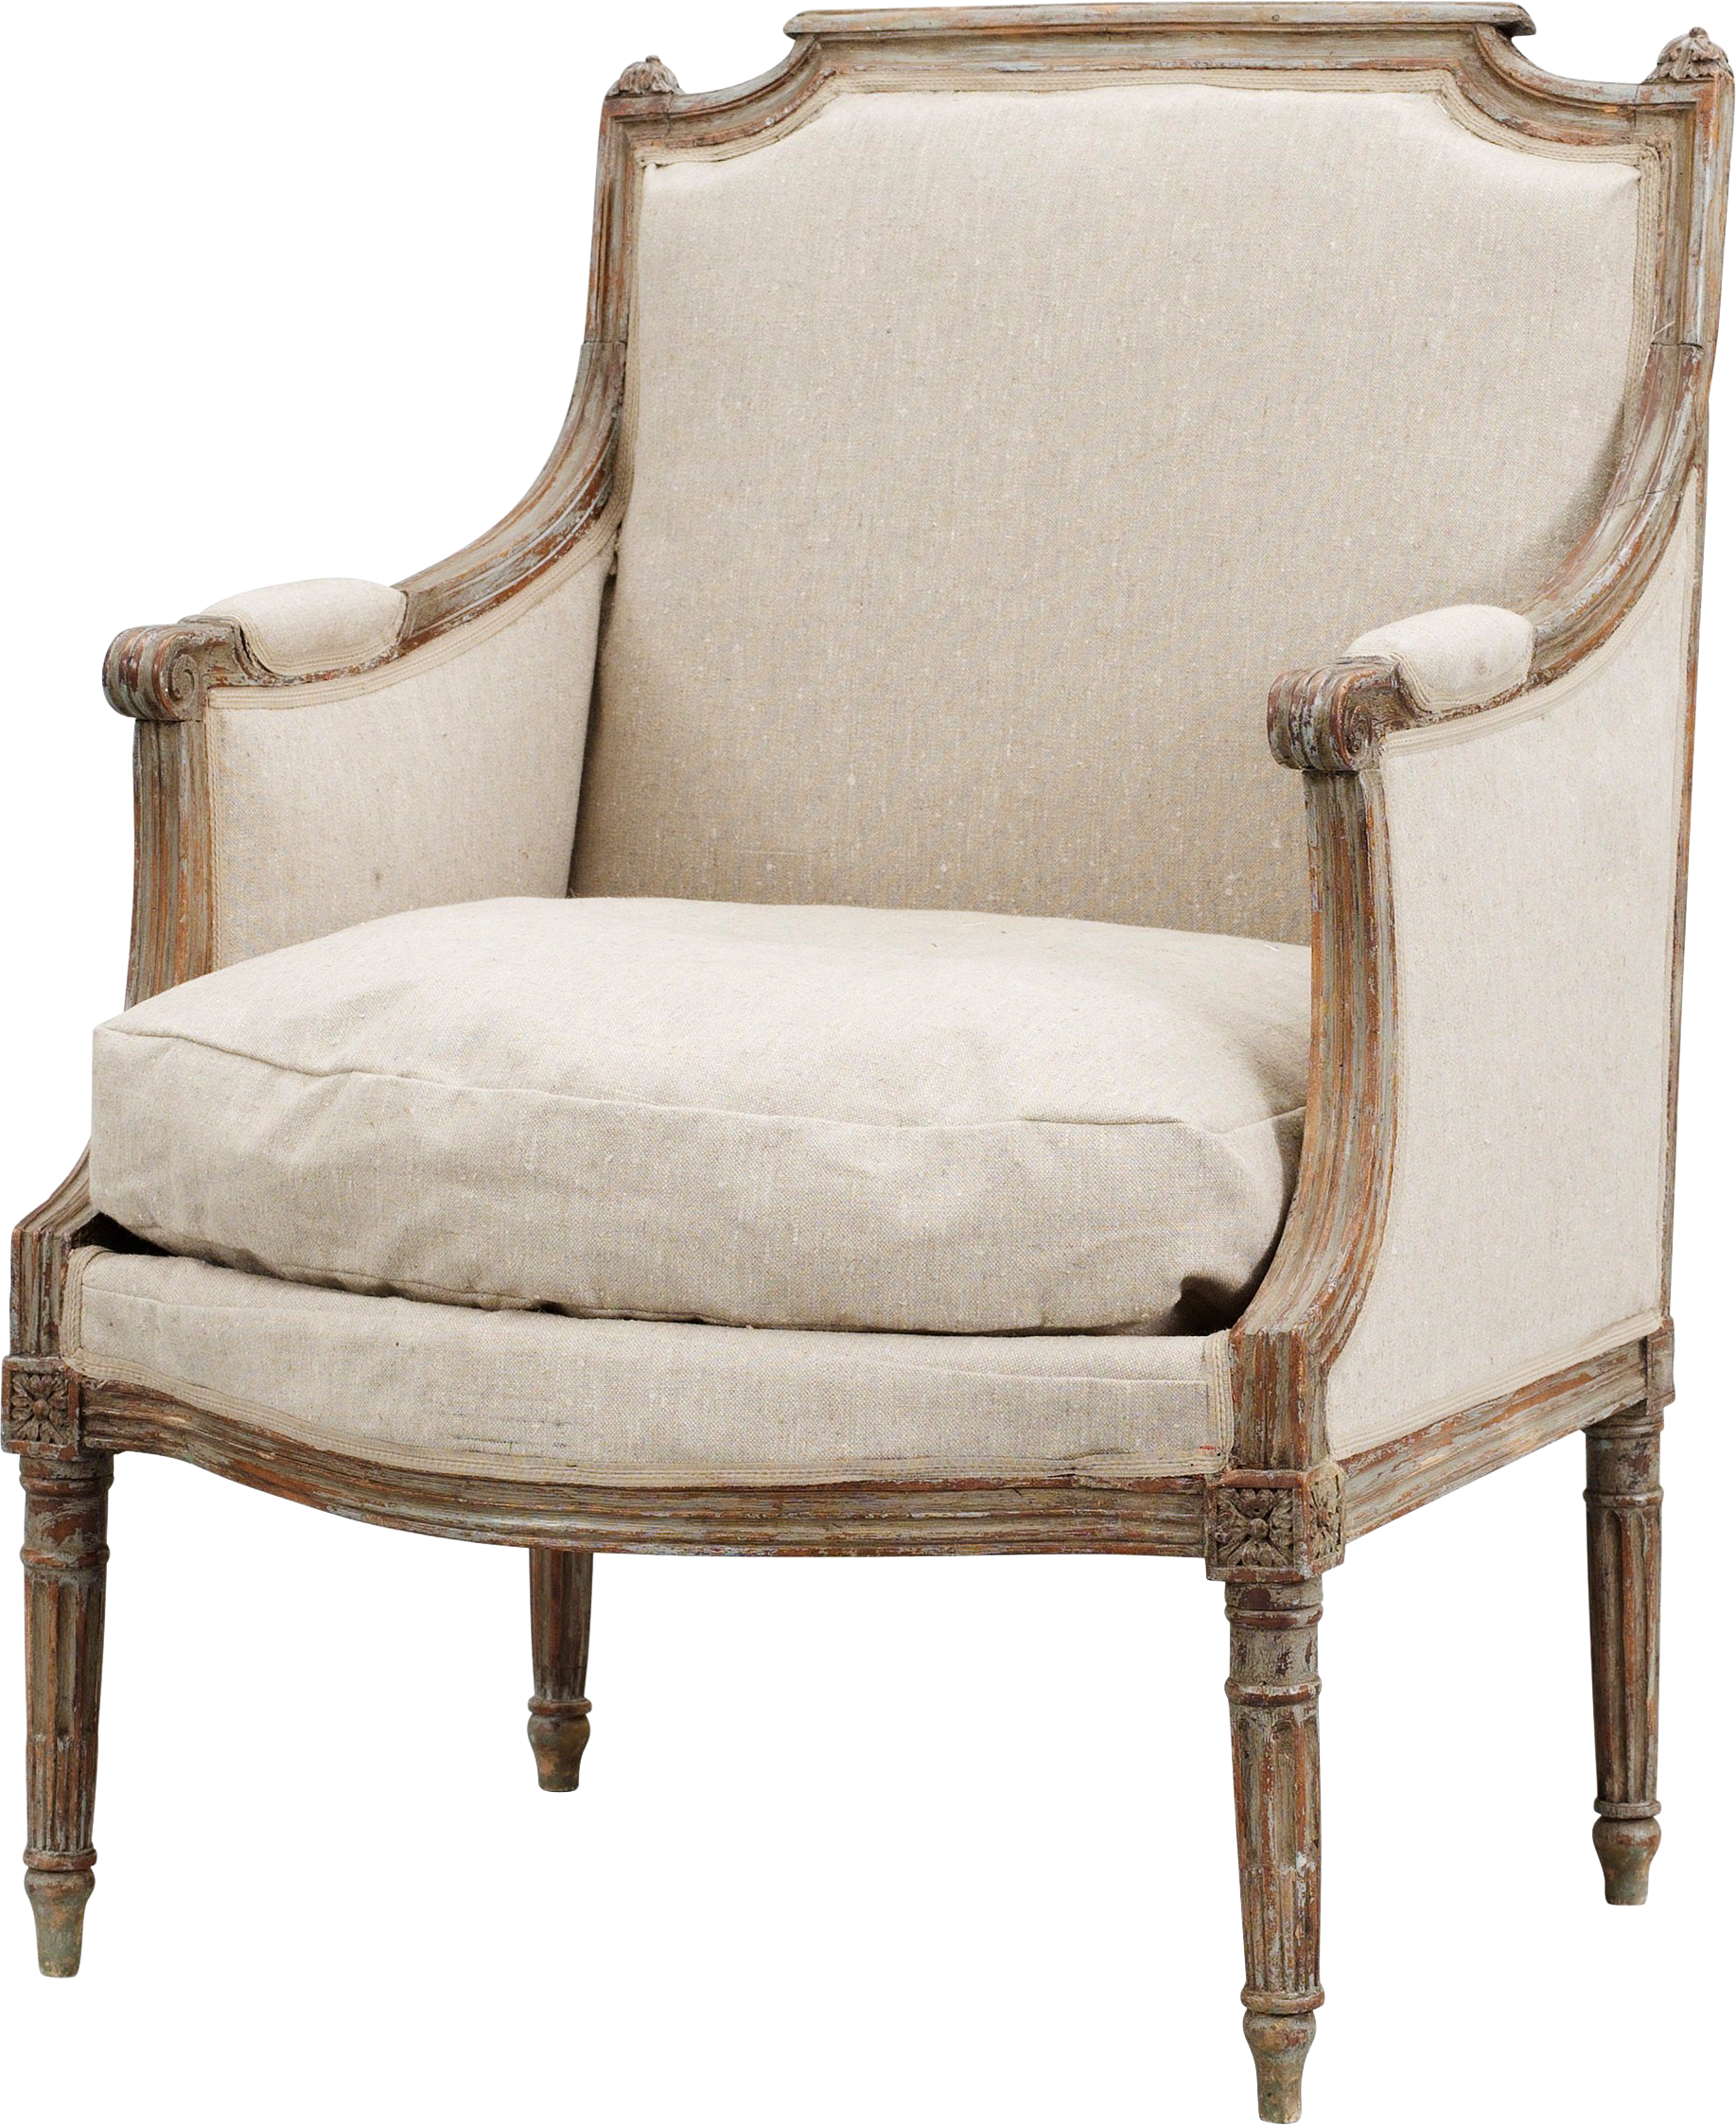 Download and use Armchair Transparent PNG Image